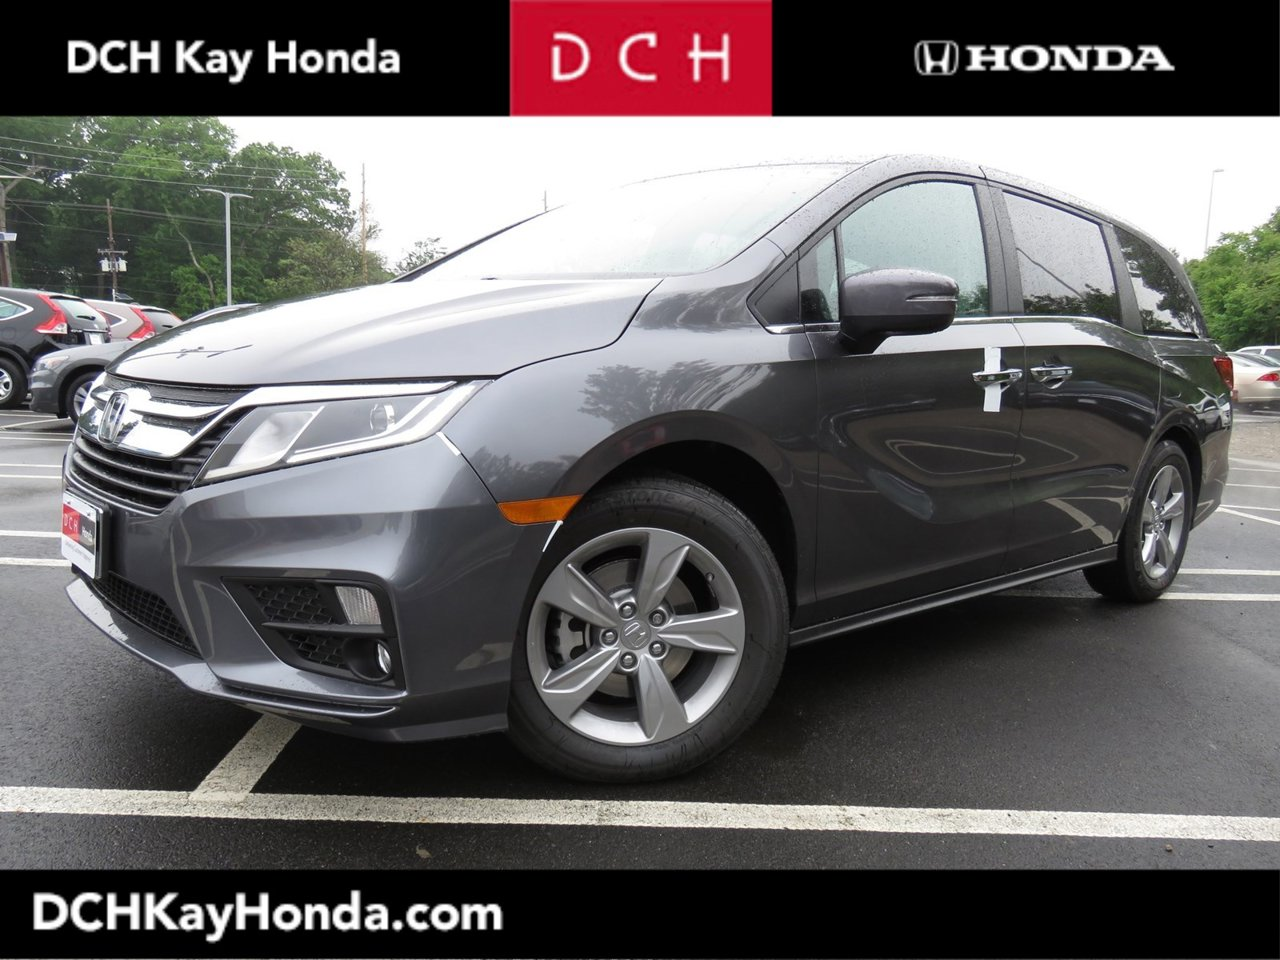 New 2020 Honda Odyssey in Eatontown, NJ